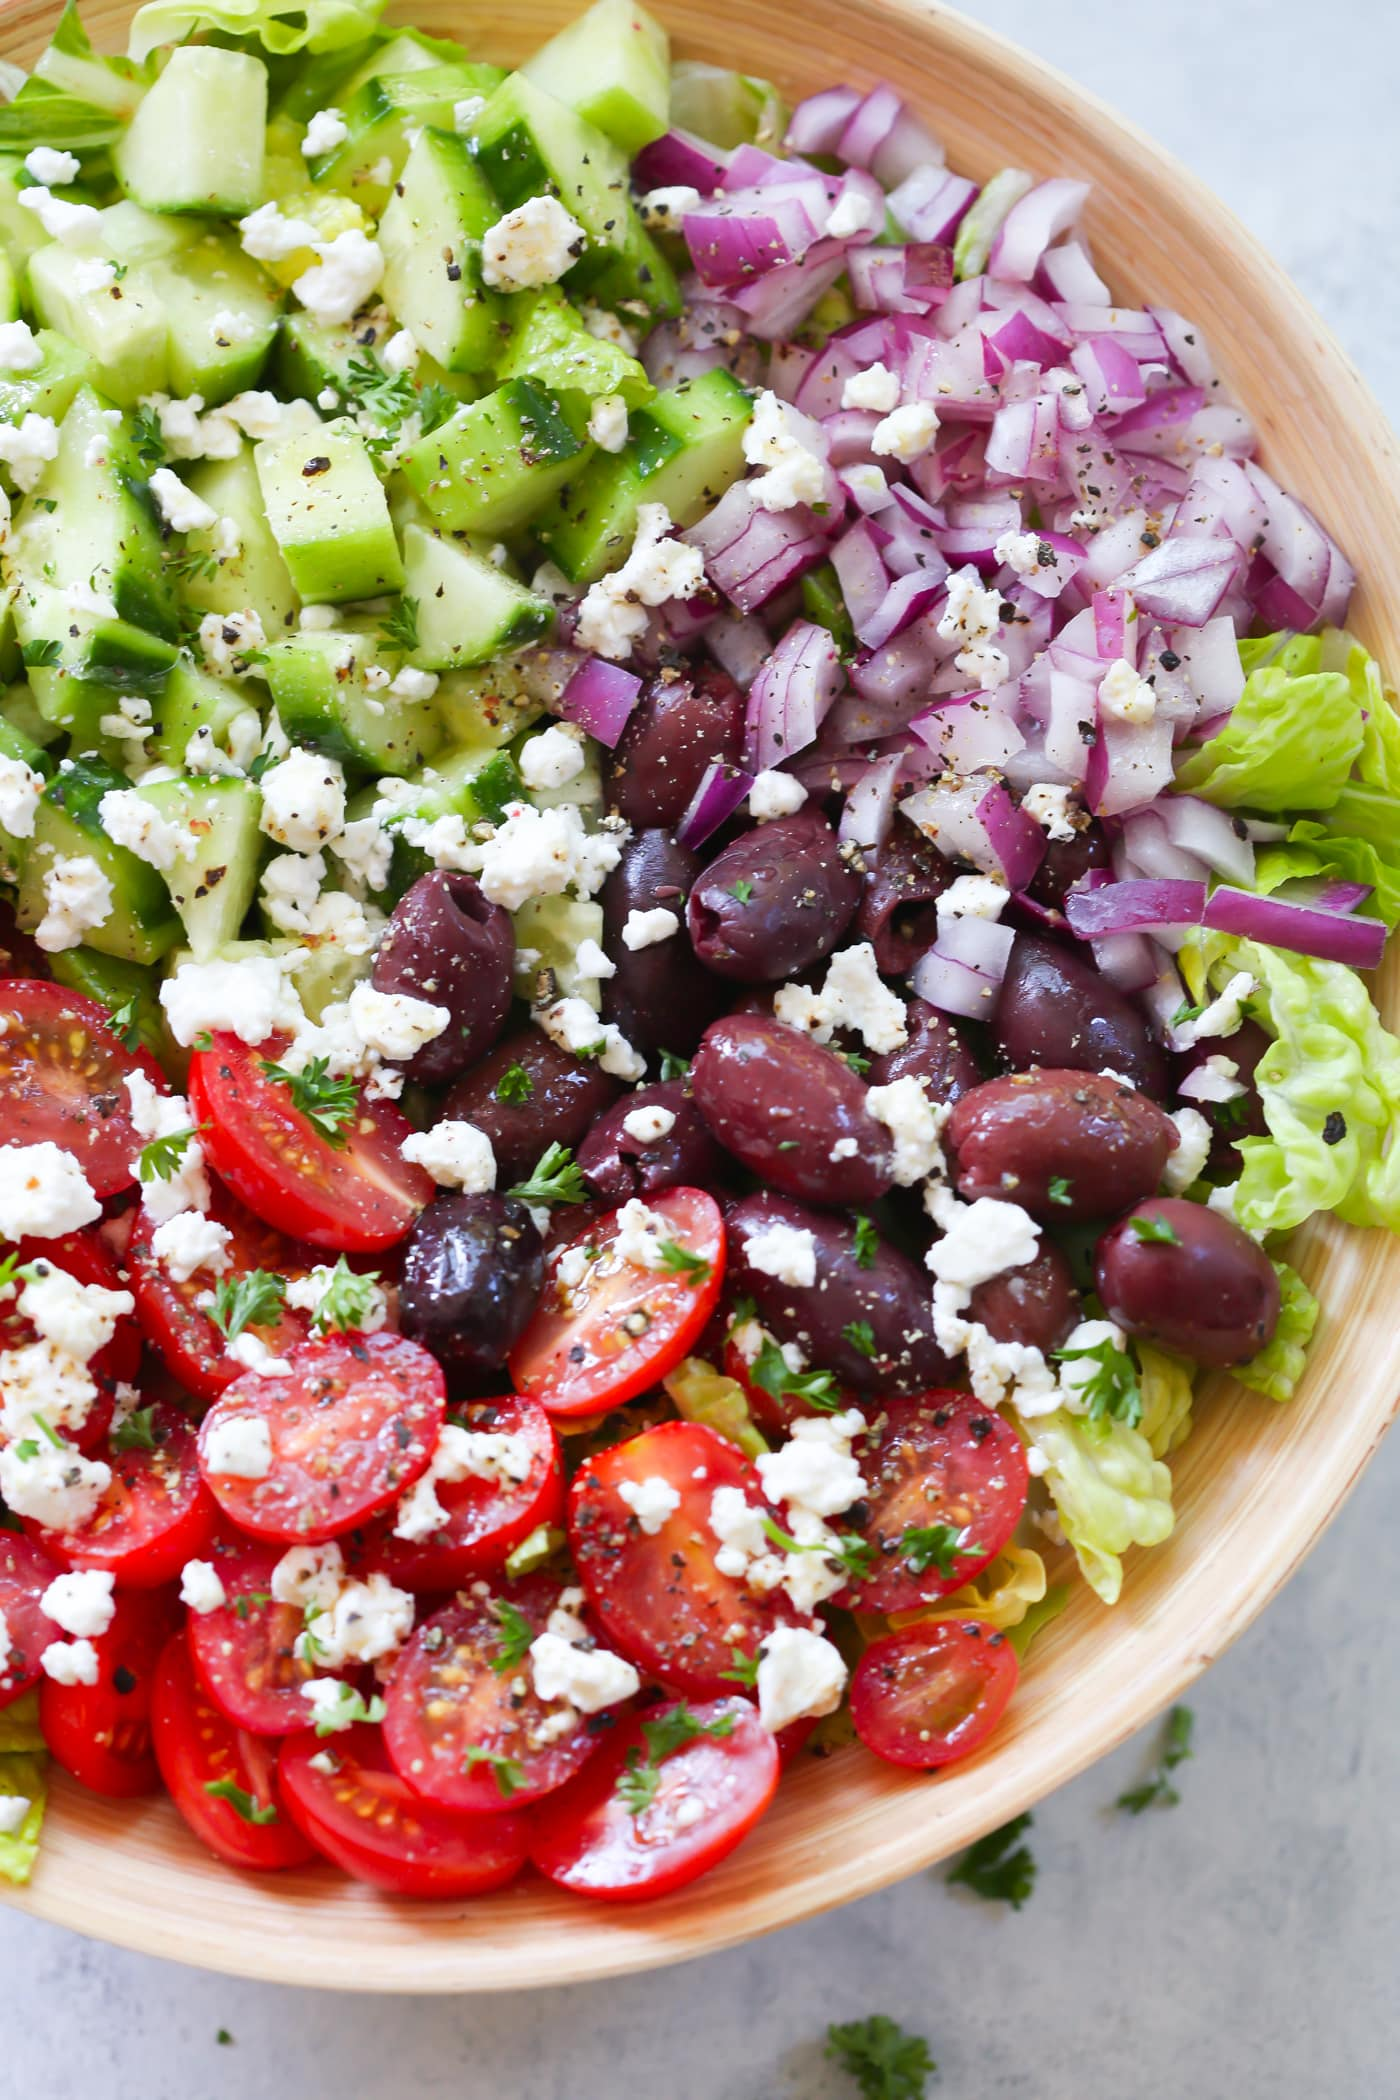 Easy Mediterranean Chopped Salad - Enjoy this Easy Mediterranean Chopped Salad made with red onions, black olives, lettuces, cucumber, cherry tomatoes, feta cheese and light lemon dressing!